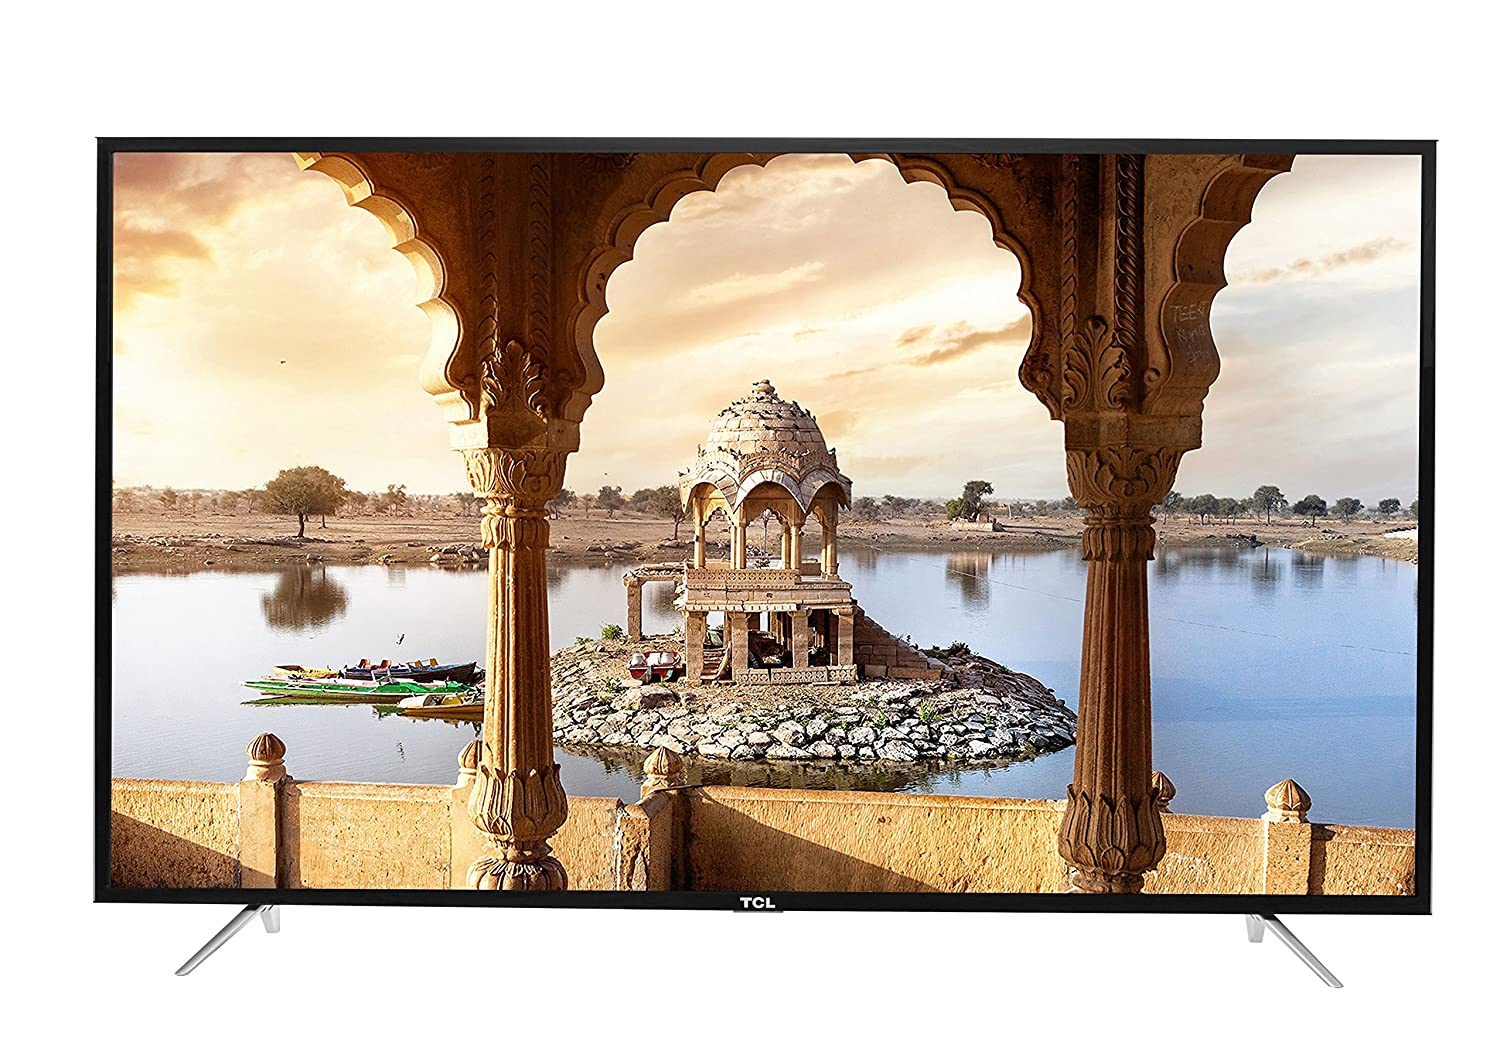 Amazon Exclusive!! Upto 20% Off On TCL Telivisons By Amazon | TCL 165 cm (65 inches) L65P1US 4K Ultra HD LED Smart TV @ Rs.74,990